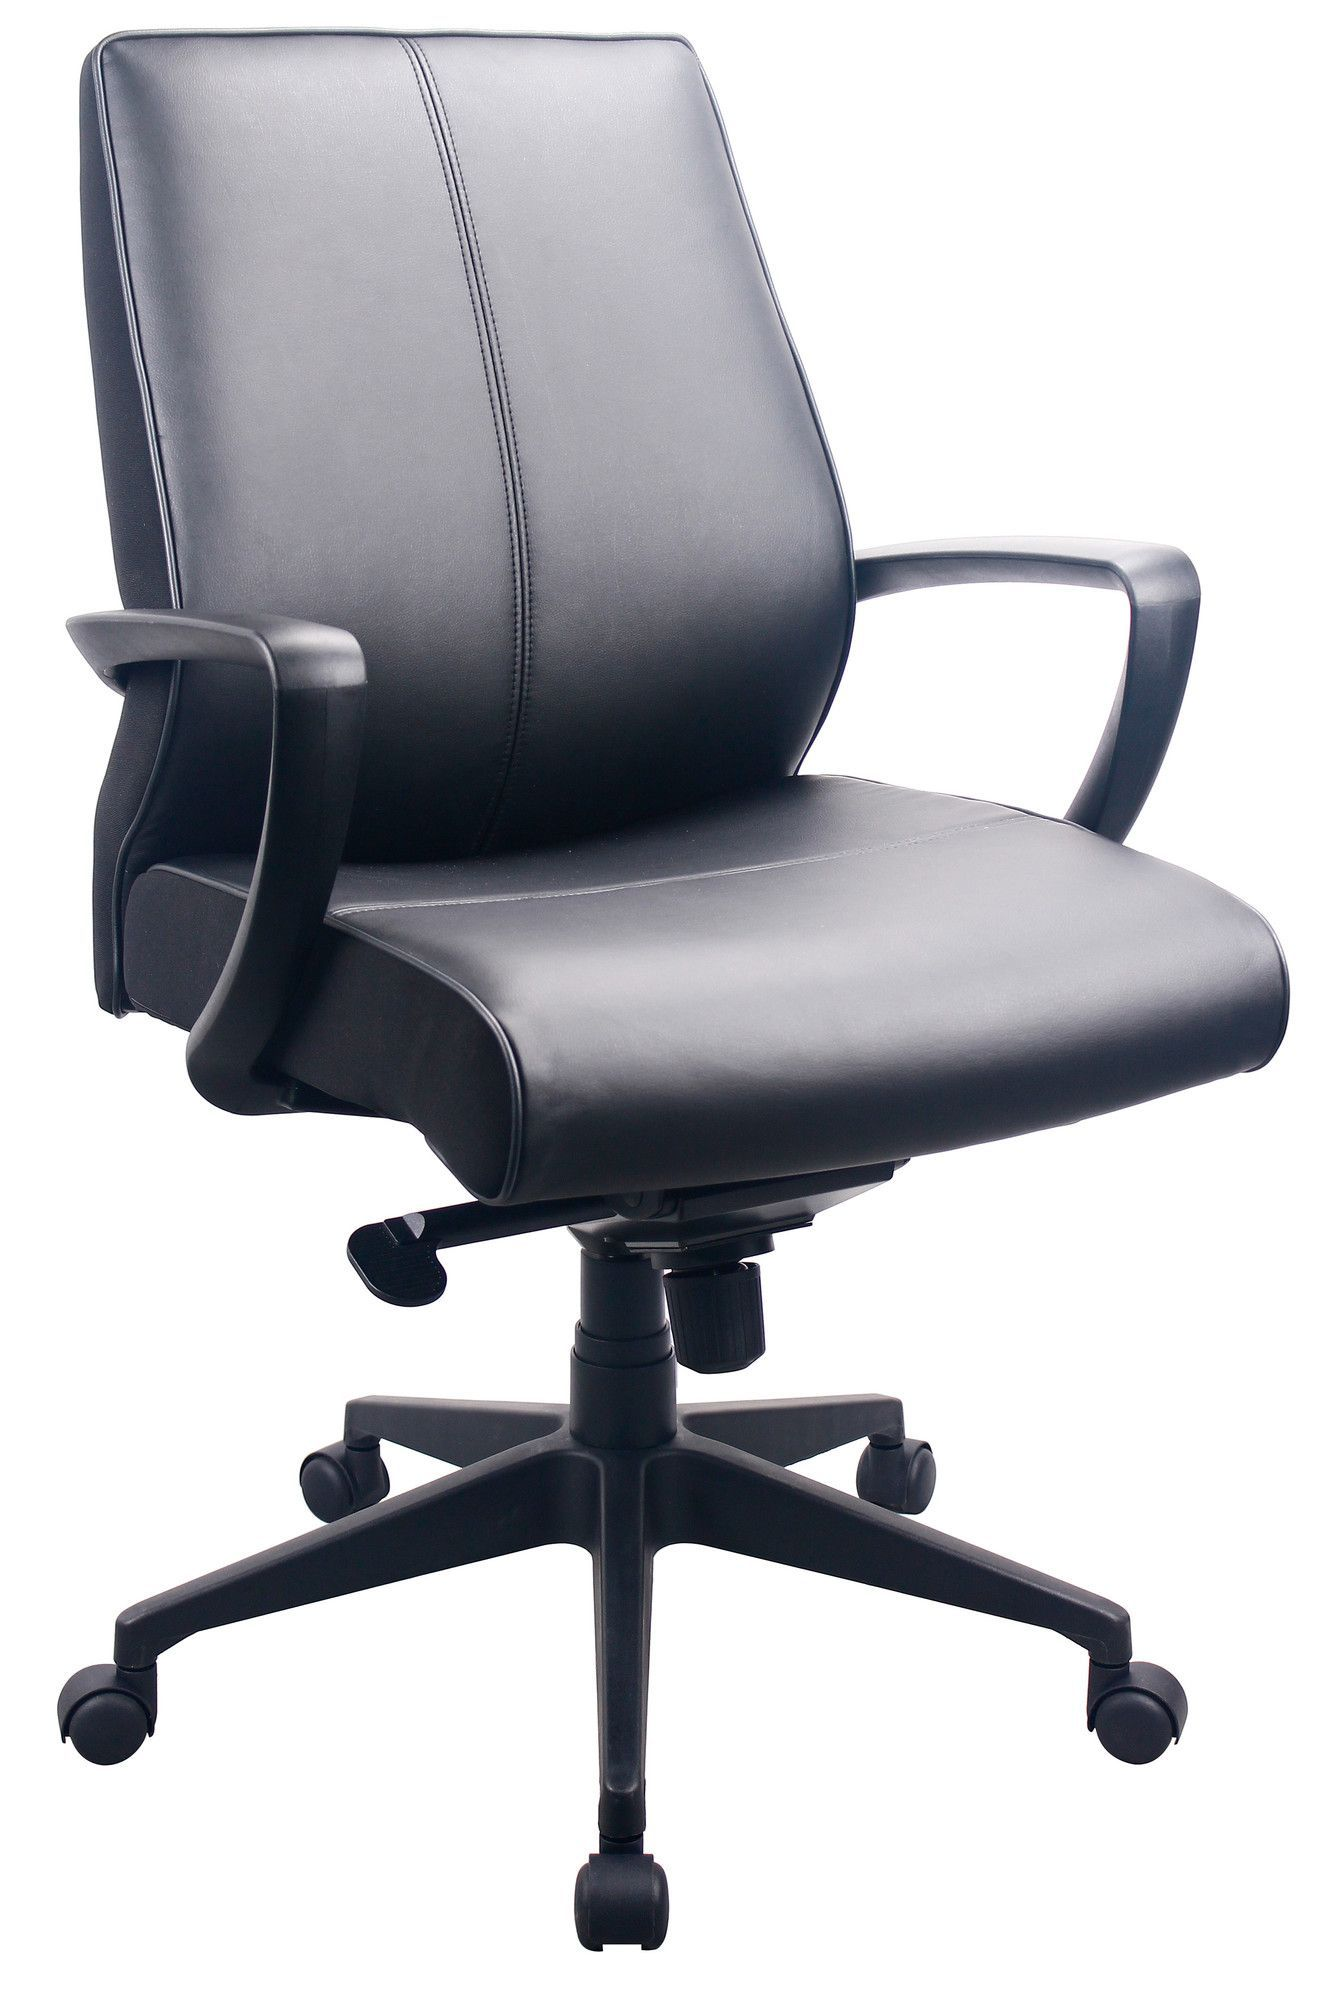 Tempur Pedic Conference Chair Used Office Chairs Executive